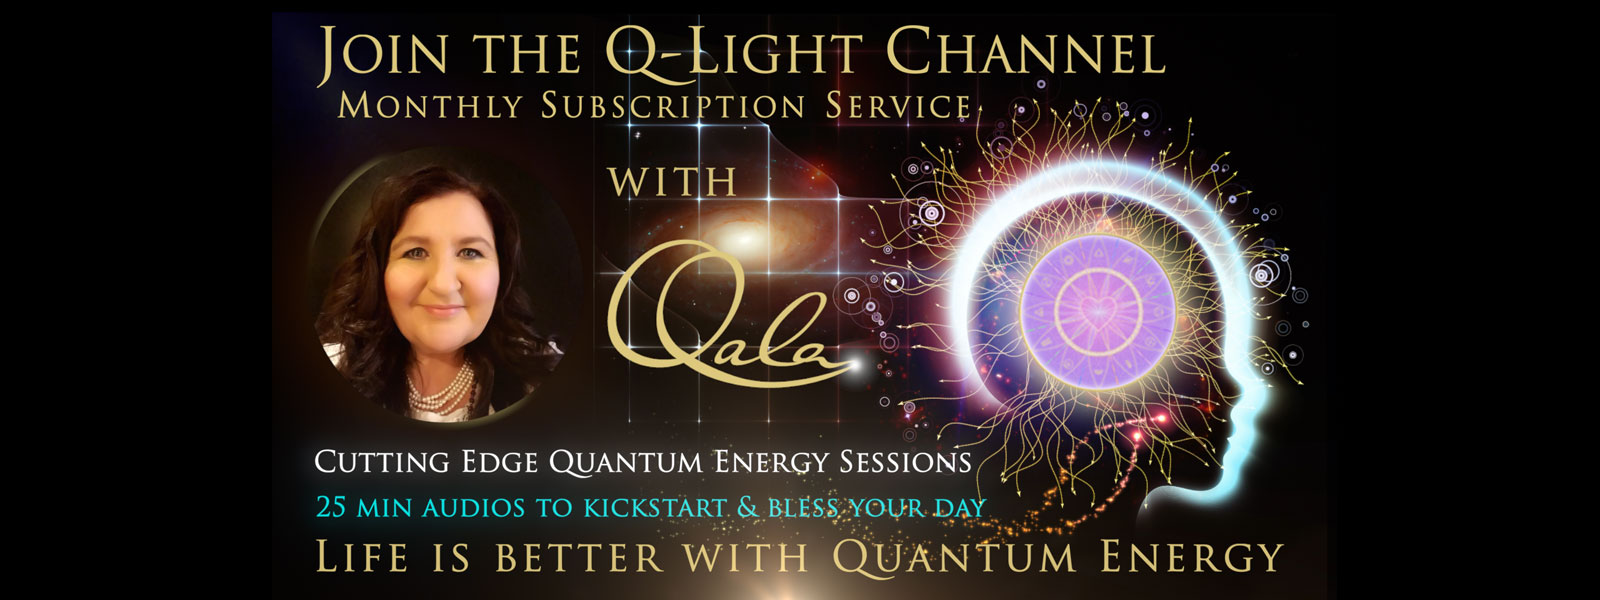 Q-Light Channel Monthly Subscription Service